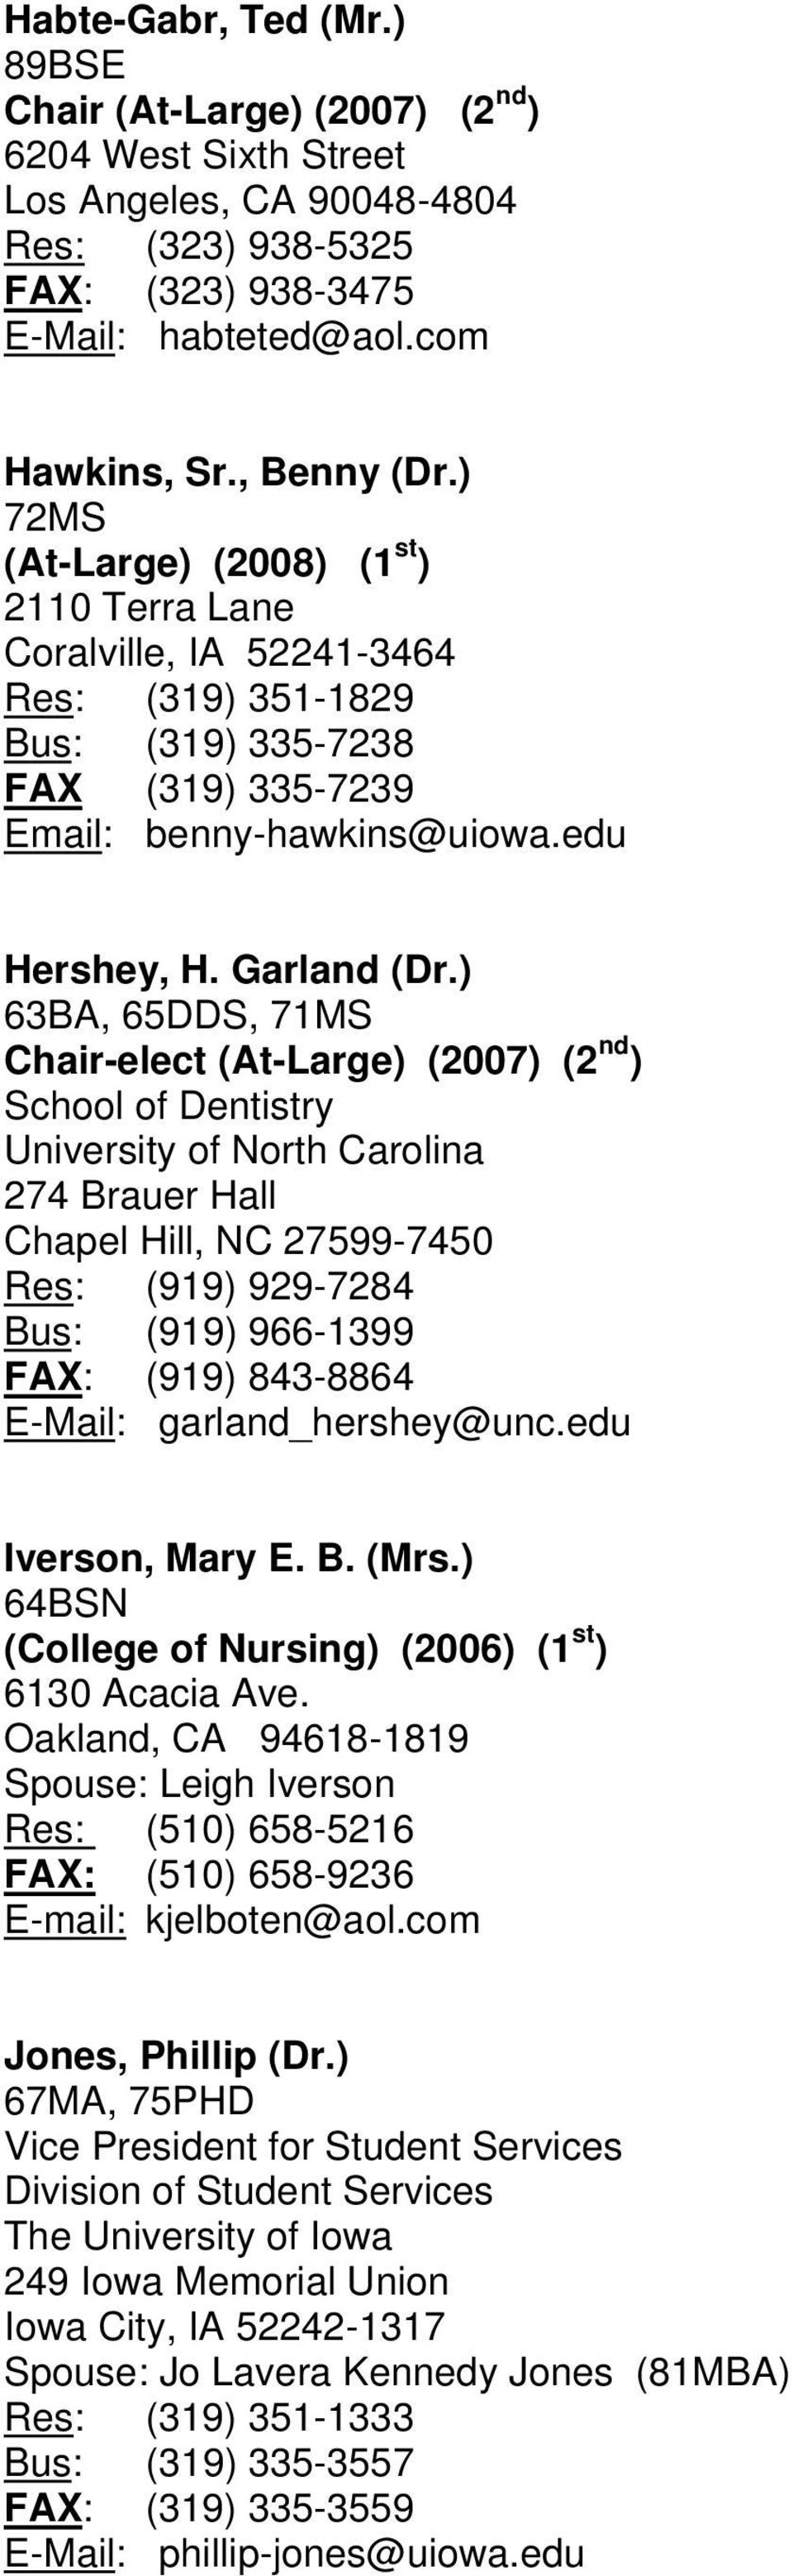 ) 63BA, 65DDS, 71MS Chair-elect (At-Large) (2007) (2 nd ) School of Dentistry University of North Carolina 274 Brauer Hall Chapel Hill, NC 27599-7450 Res: (919) 929-7284 Bus: (919) 966-1399 FAX: